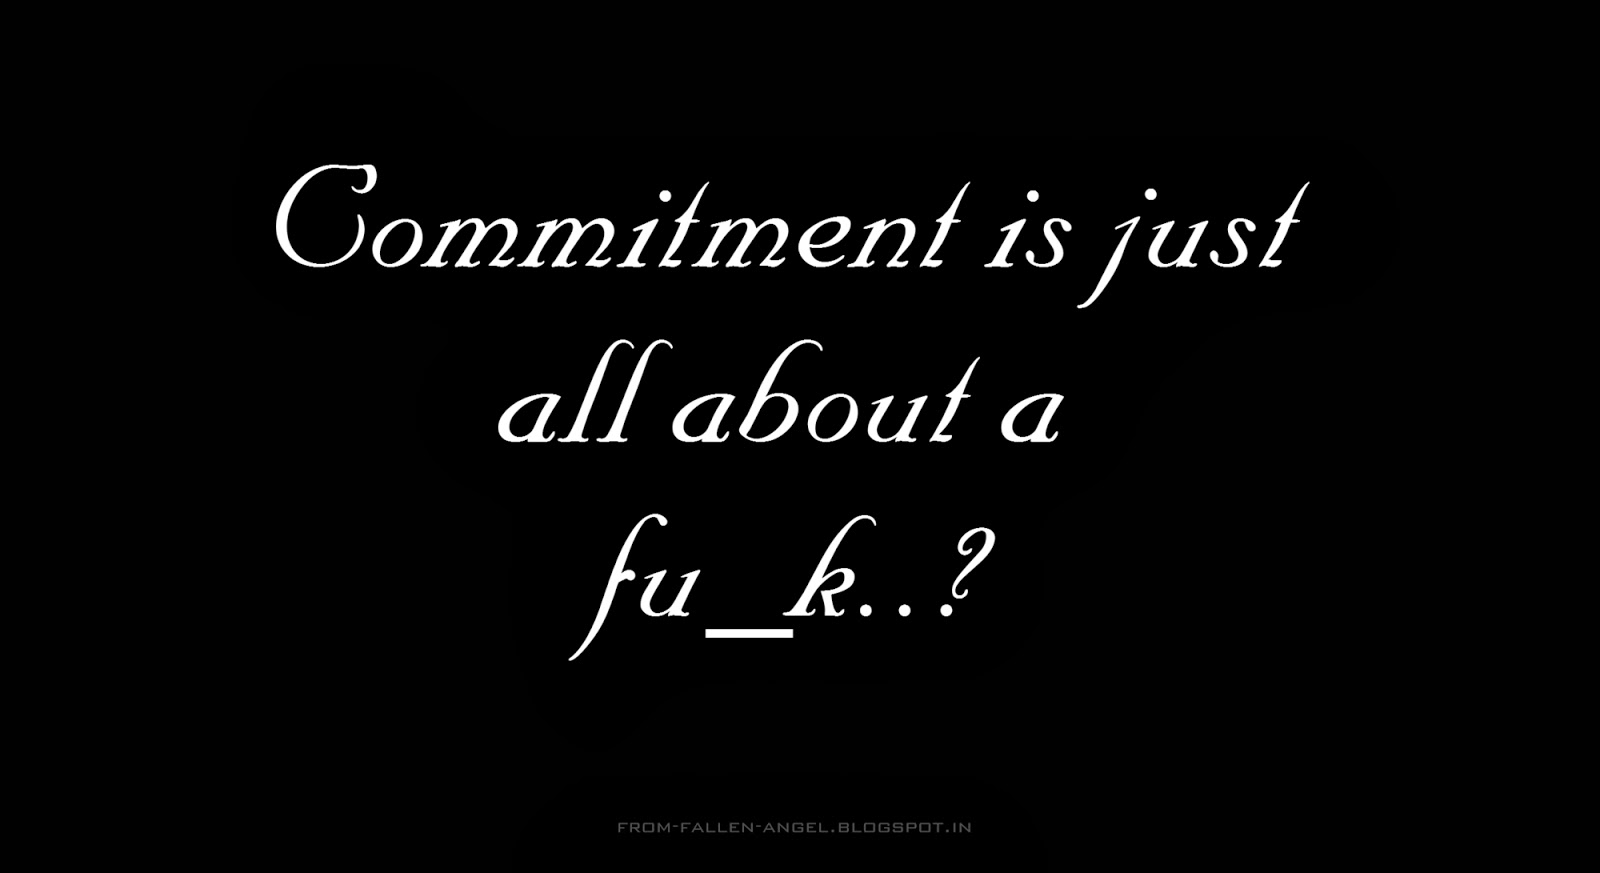 Commitment is just all about a fuck..?